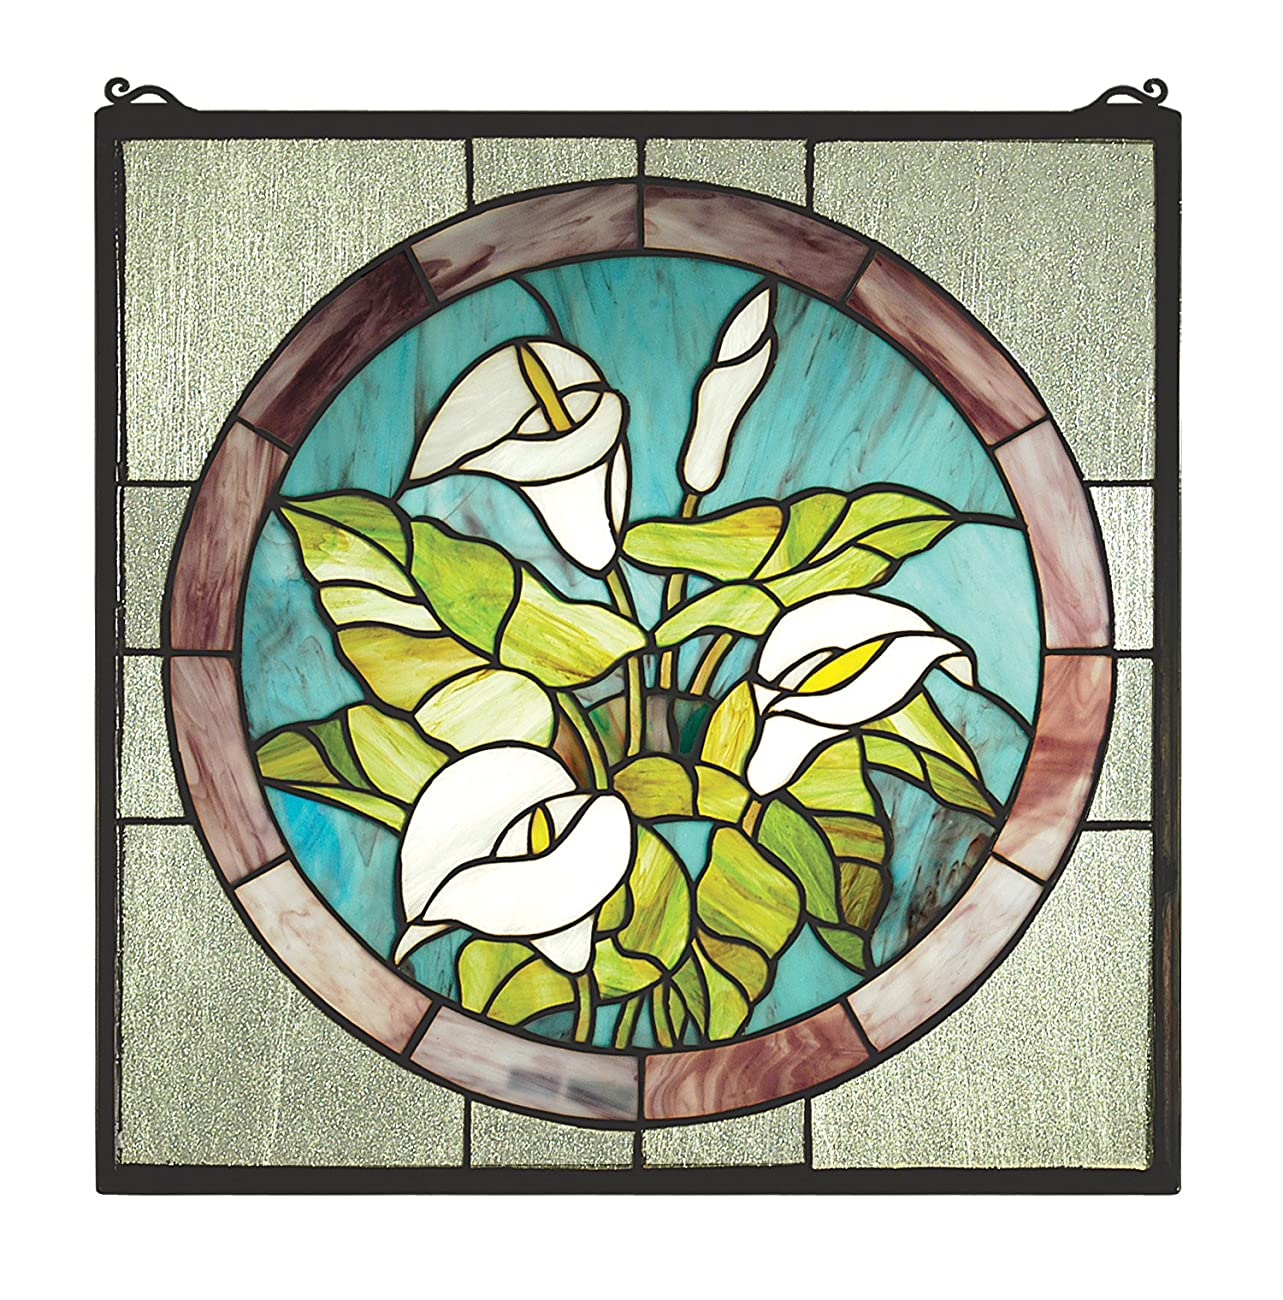 Calla Lily Stained Glass Window 0